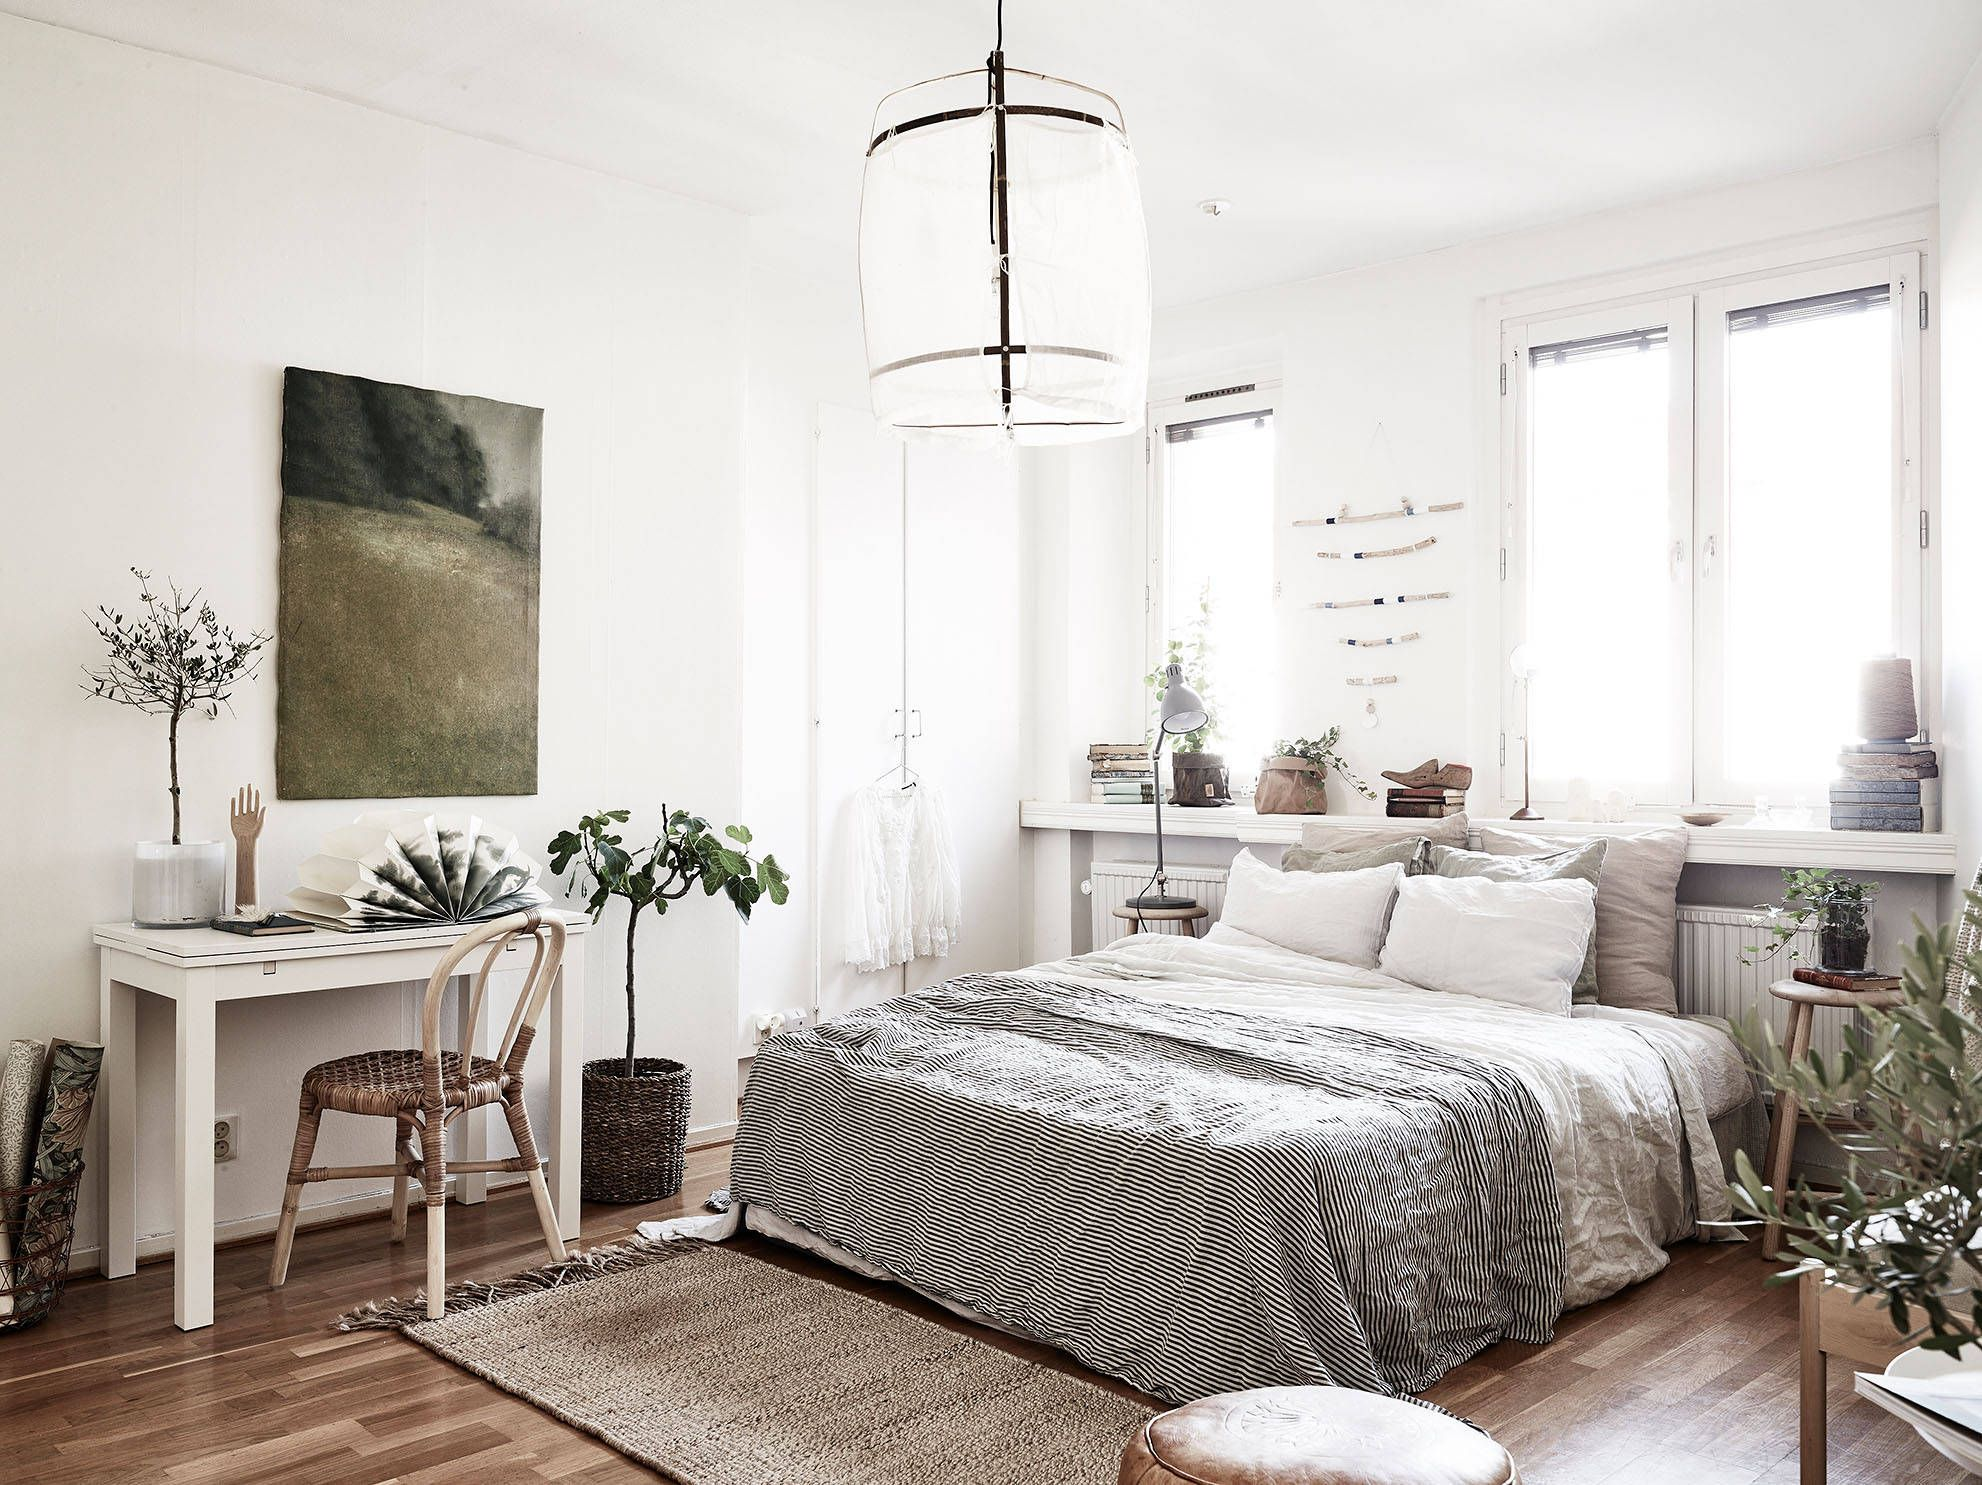 Uber dreamy tiny studio apartment daily dream decor for Winzige wohnung einrichten